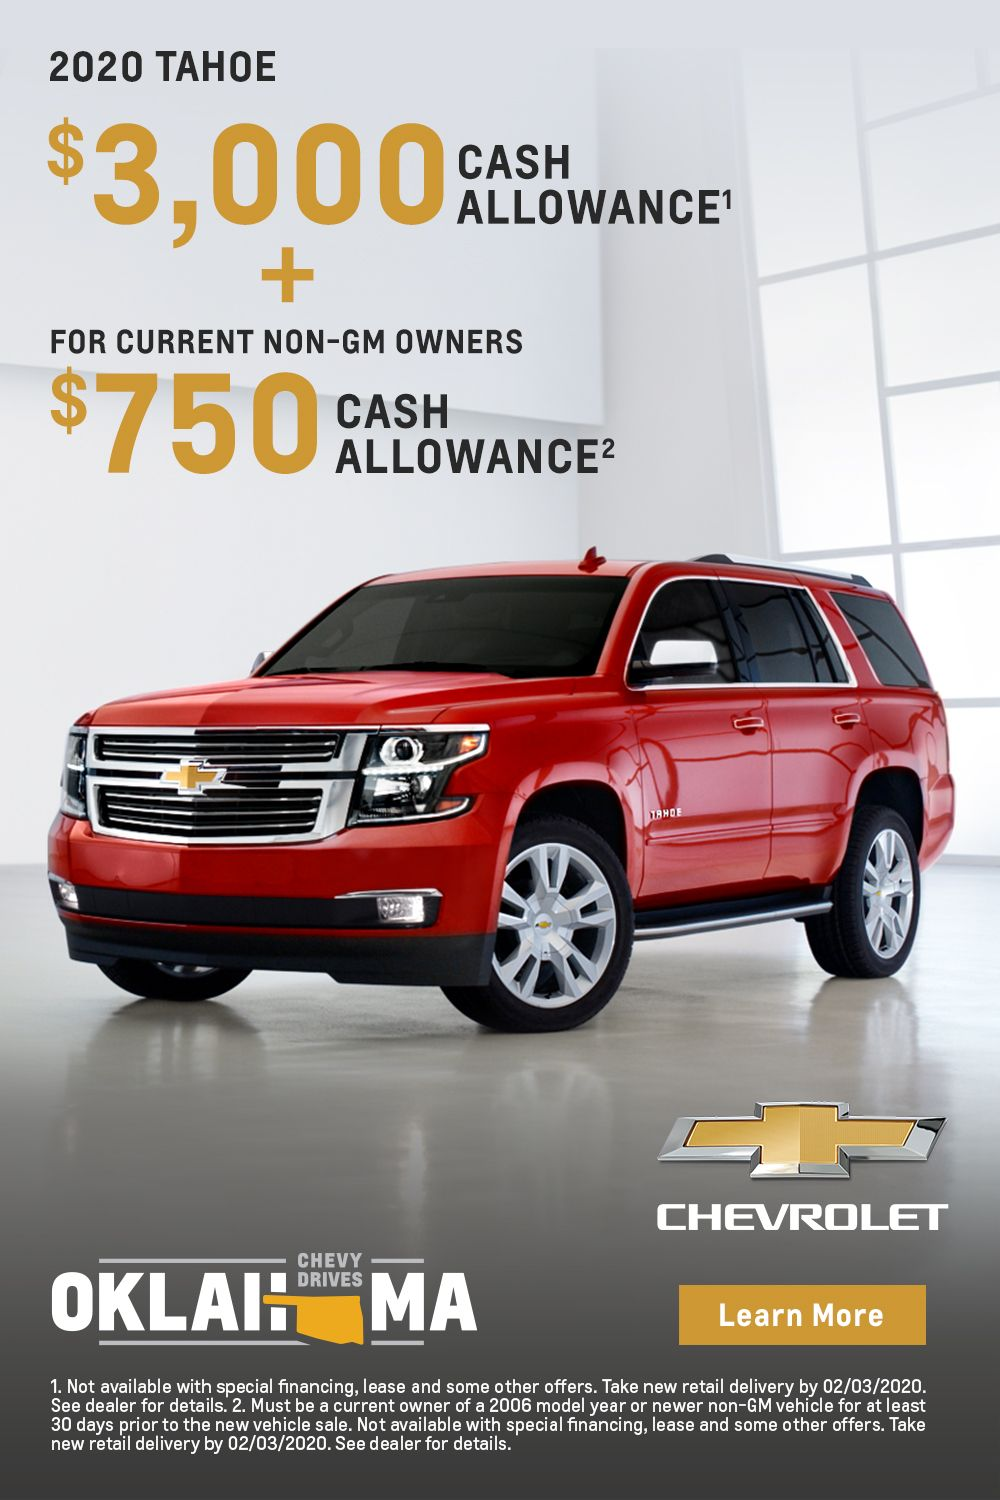 Shop Now And Visit Your Oklahoma Chevy Team Dealers Chevy Dealers Chevy Chevrolet Tahoe